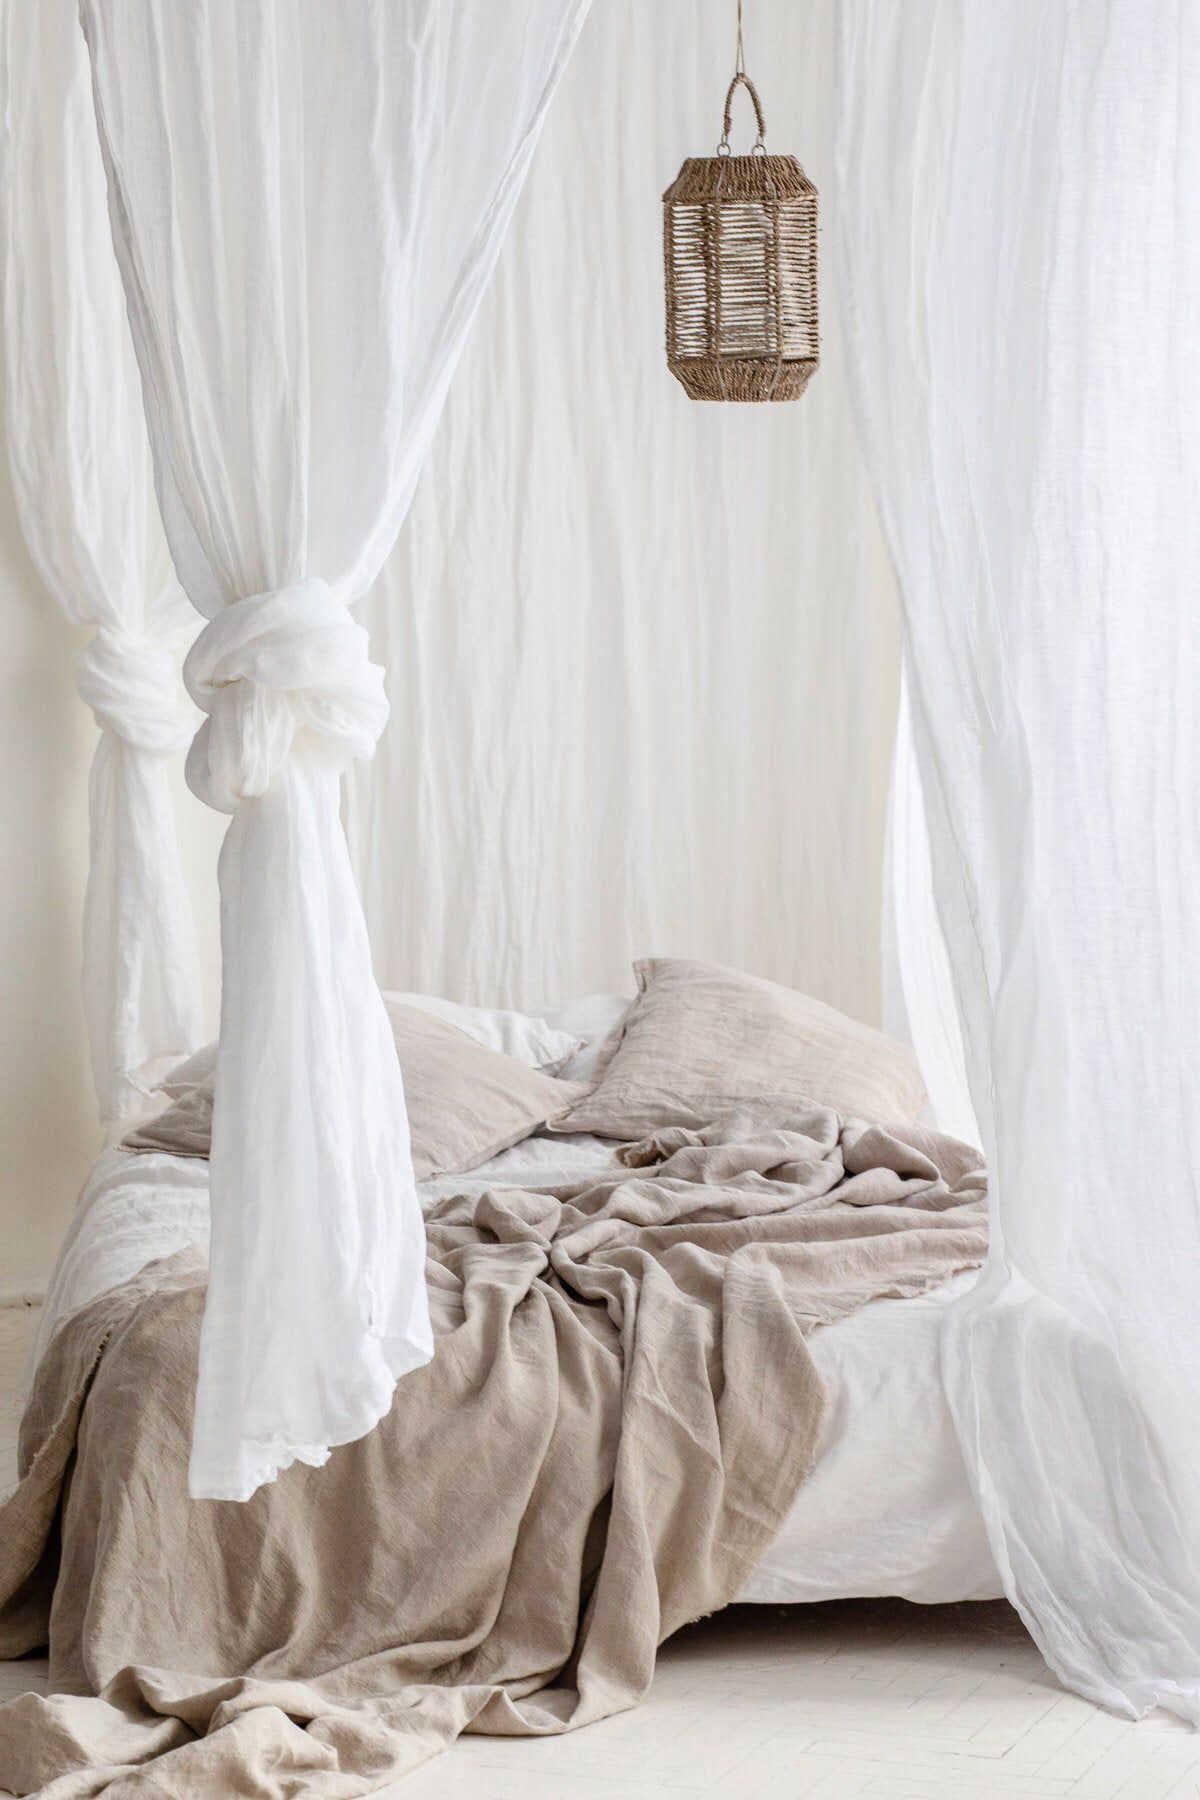 White Sheer Linen Curtains White Canopy Made Of Linen Muslin Etsy White Linen Curtains Sheer Linen Curtains White Sheer Curtains